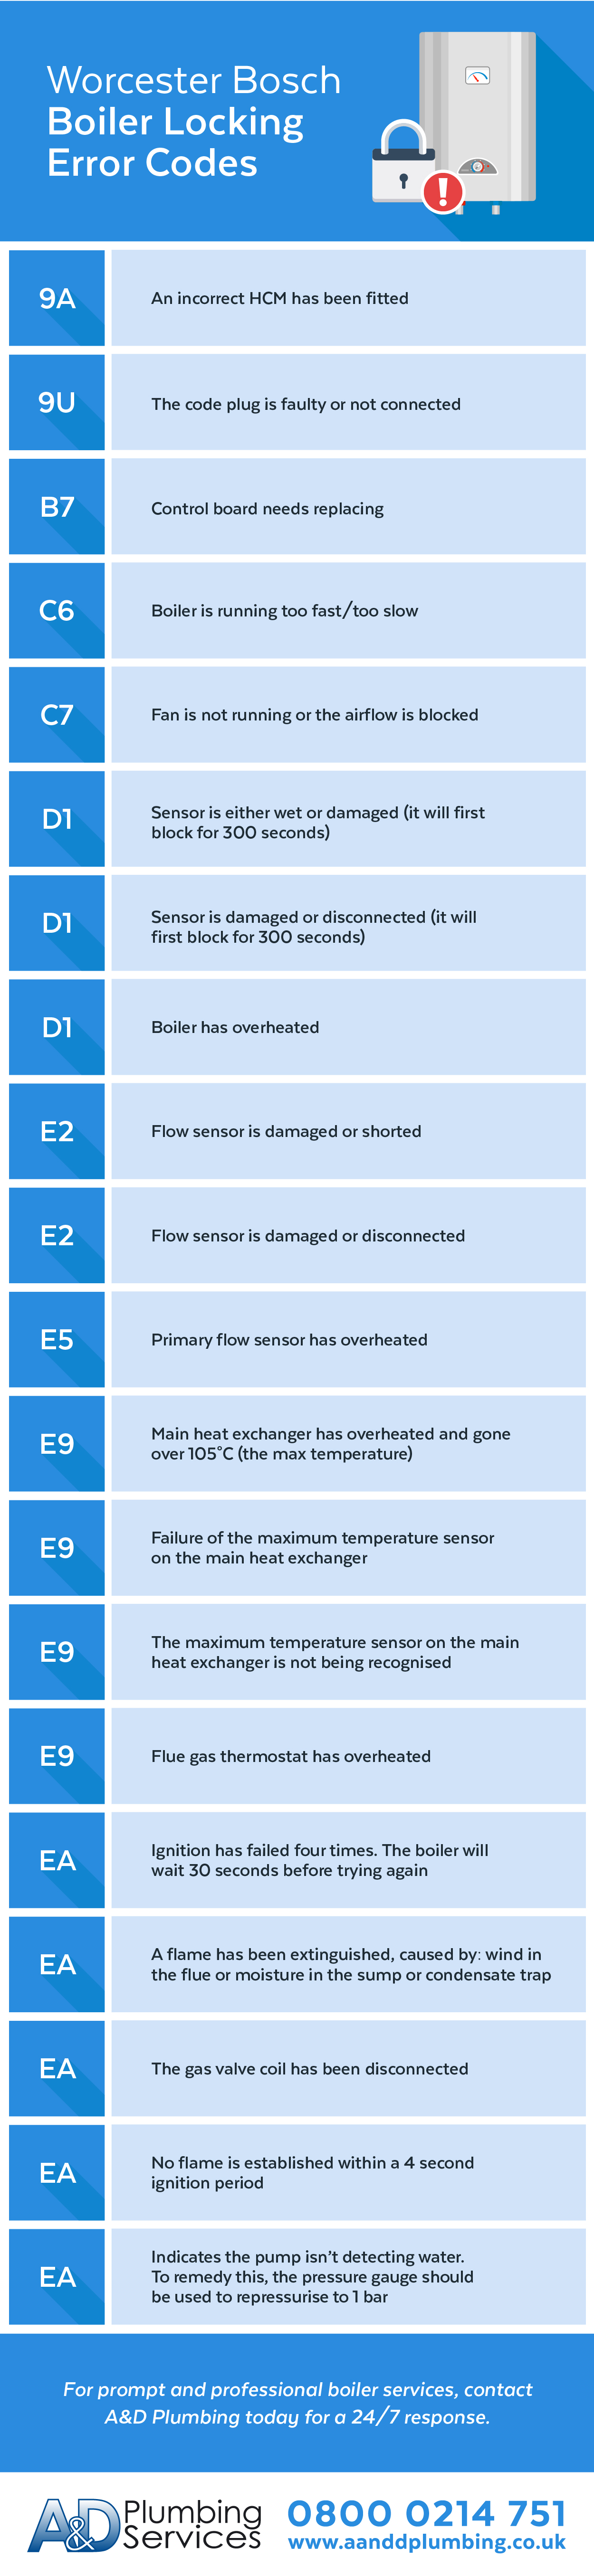 Worcester Bosch Blocking Error Codes infographic 3